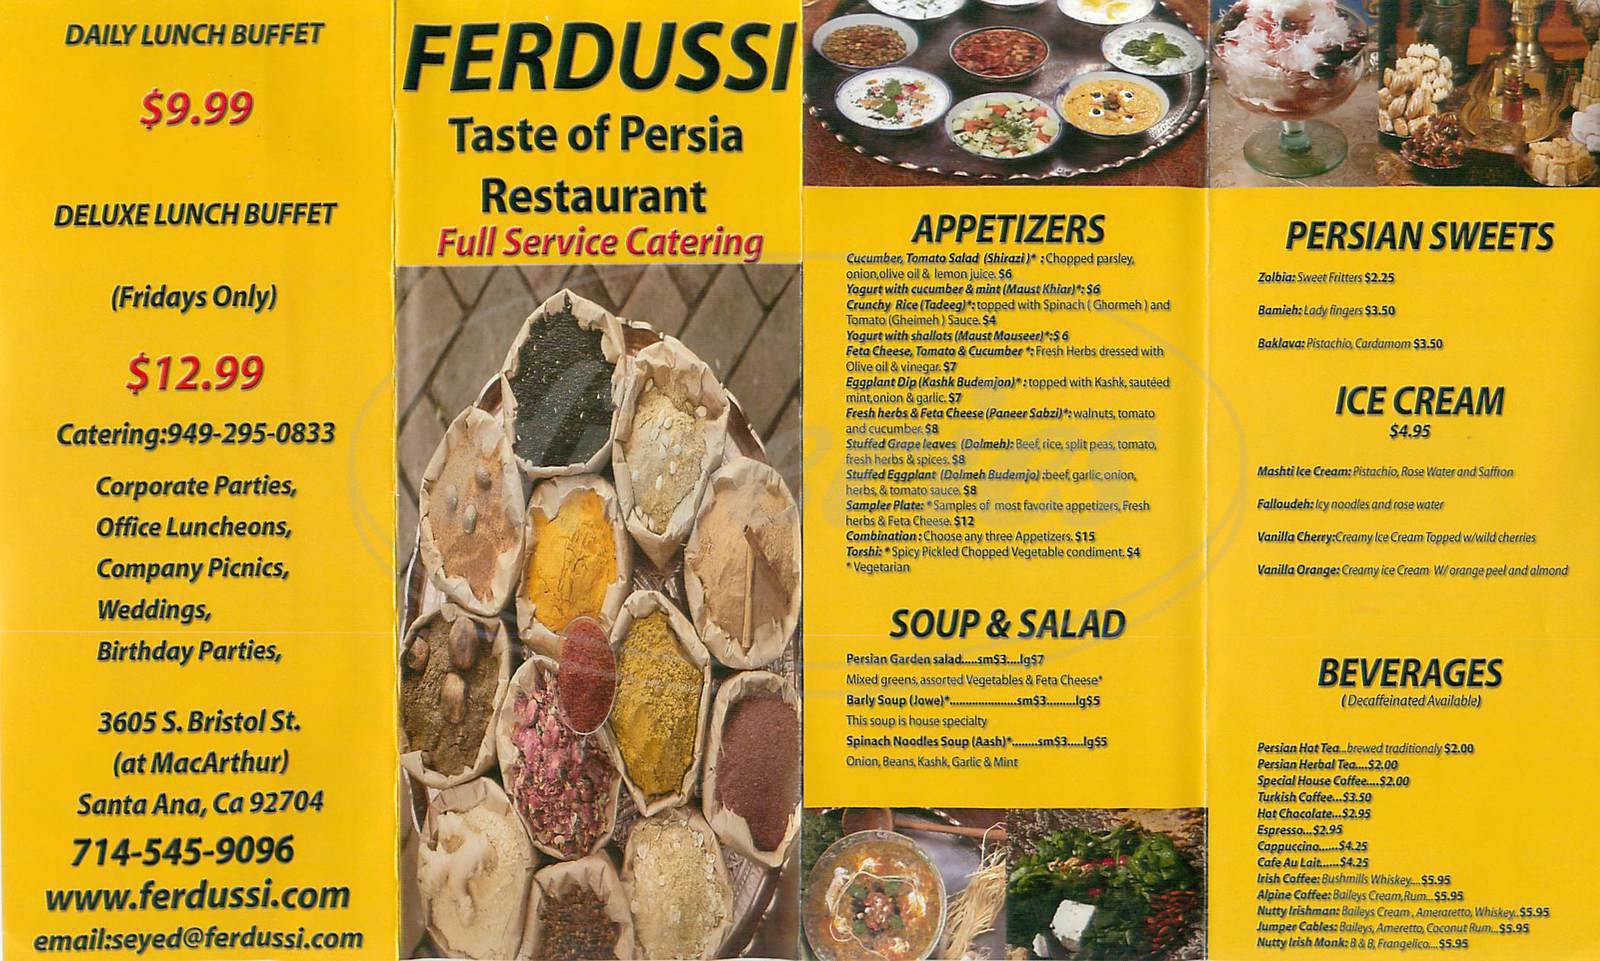 menu for Ferdussi Taste of Persia